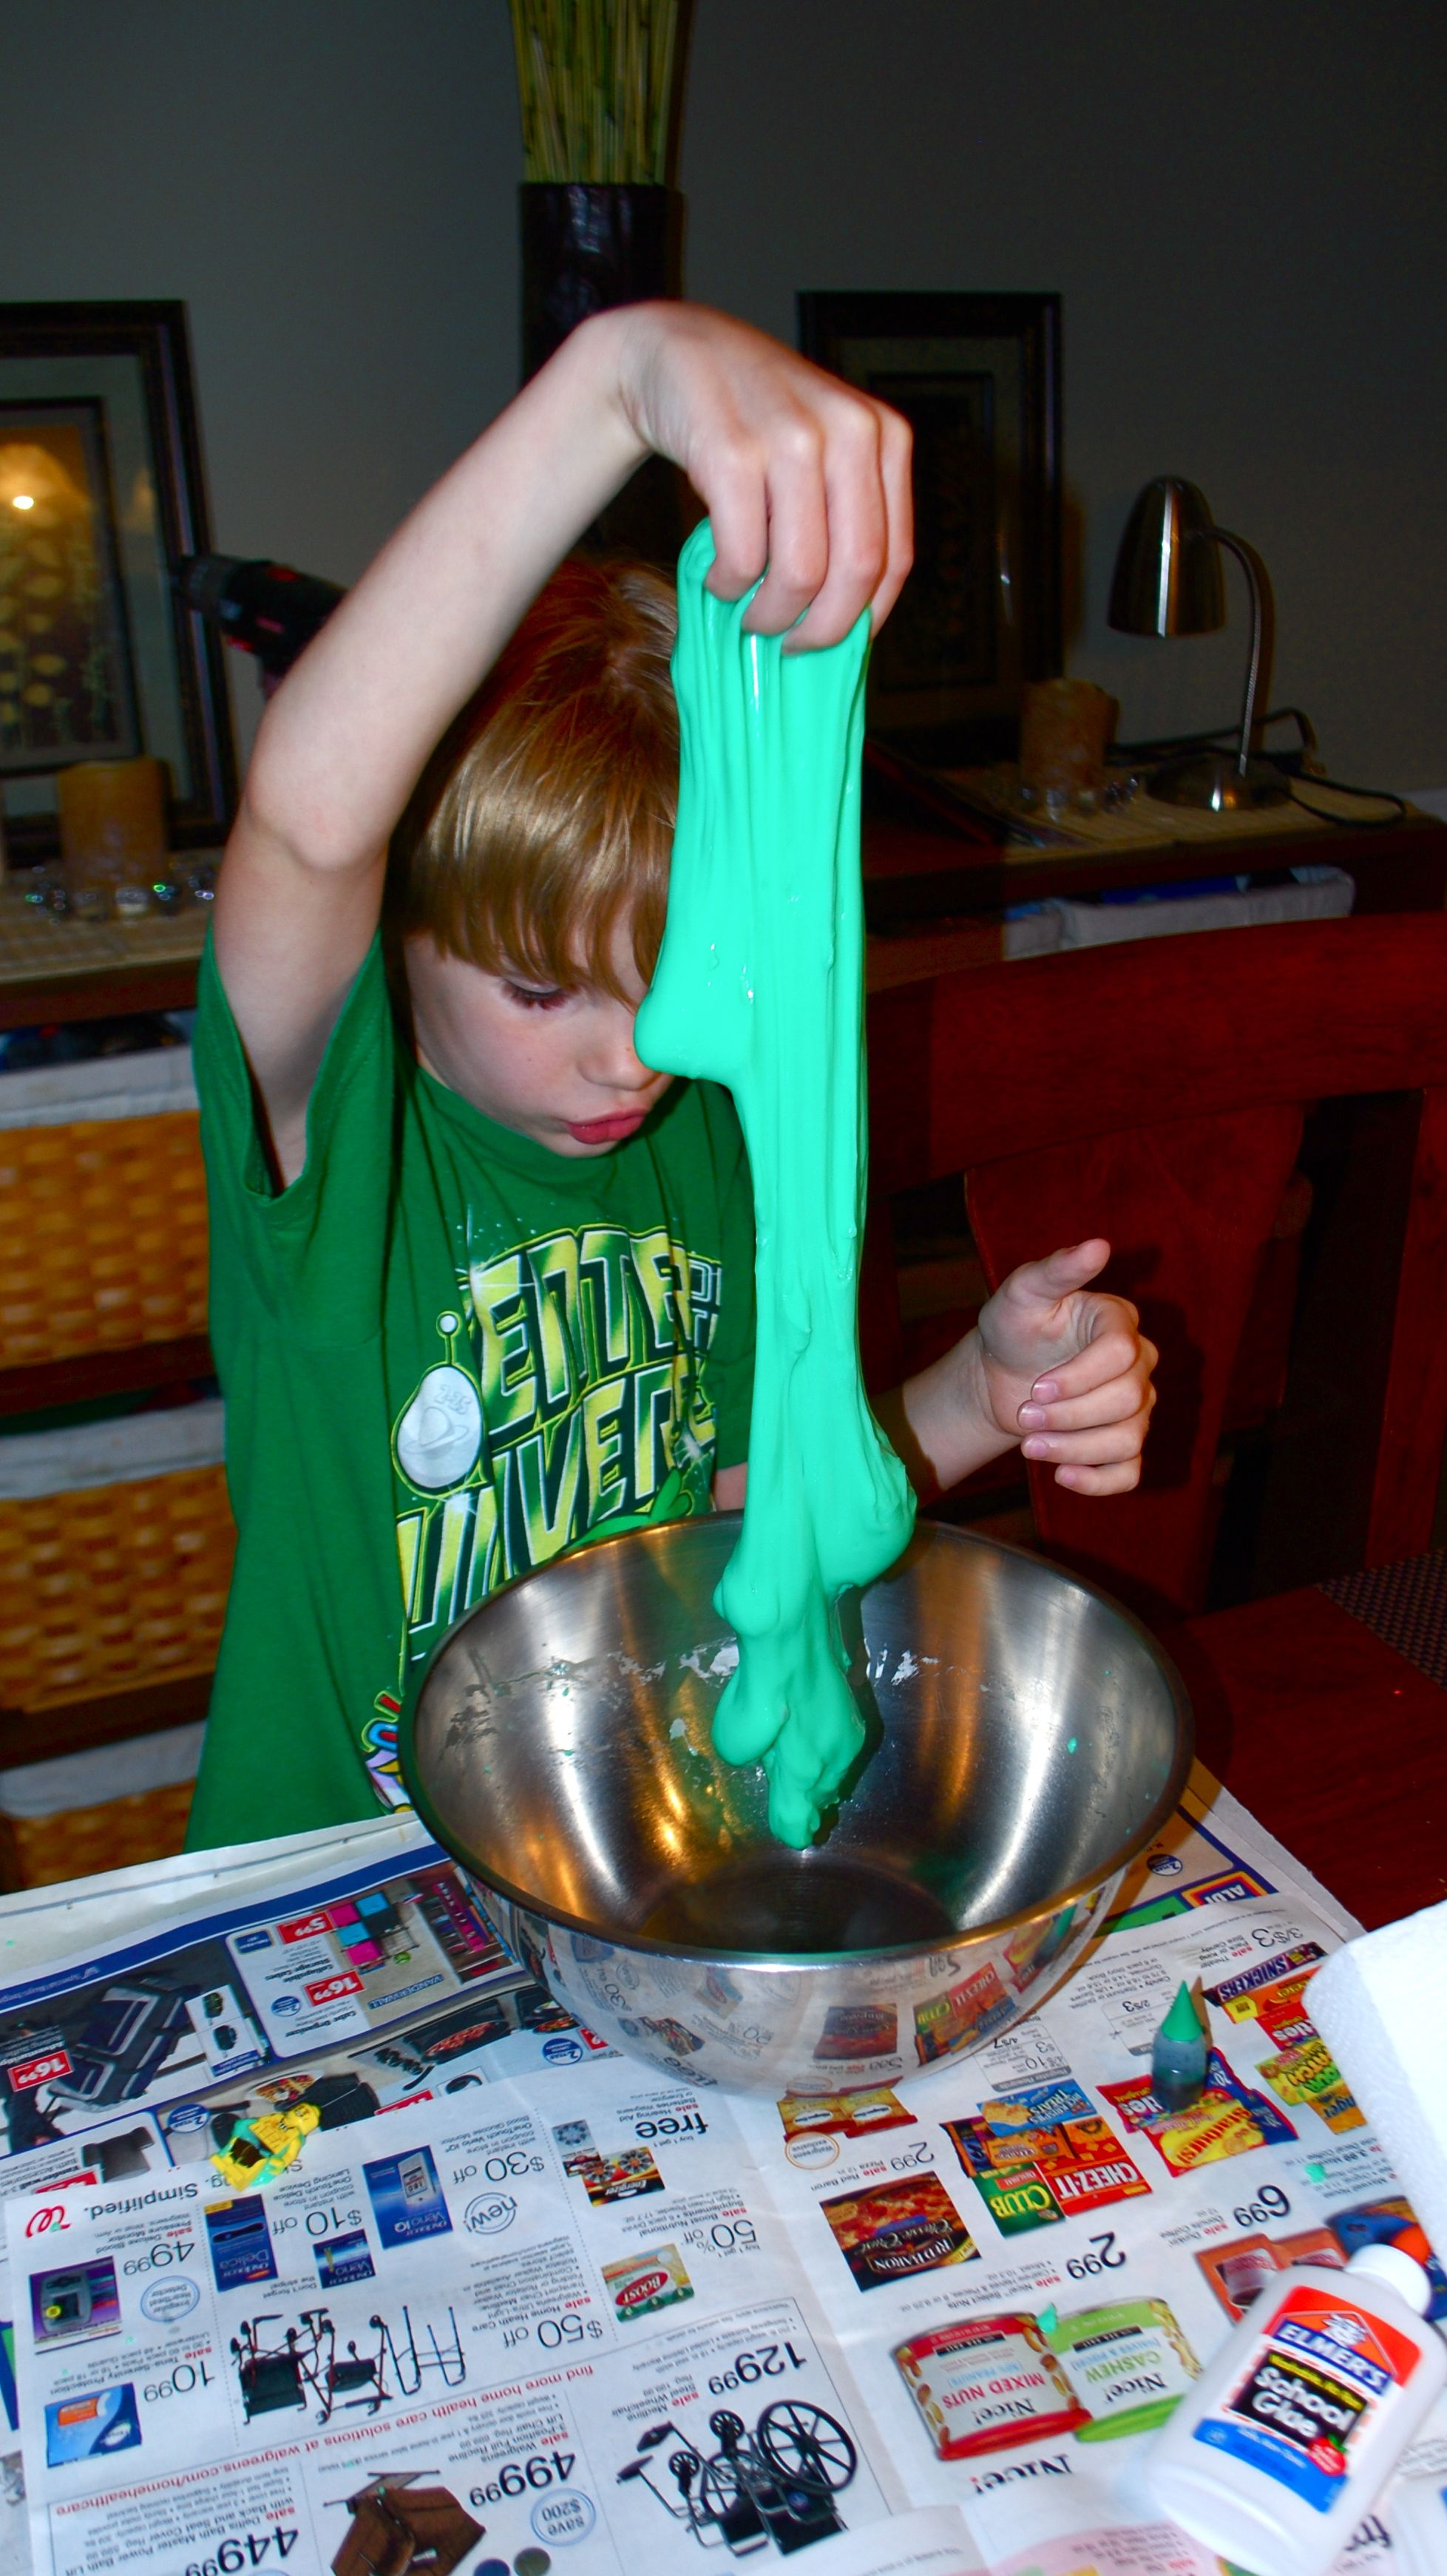 Gak with glue and borax httpstevespanglerscience how to make do it yourself slime using elmers glue and borax solutioingenieria Gallery